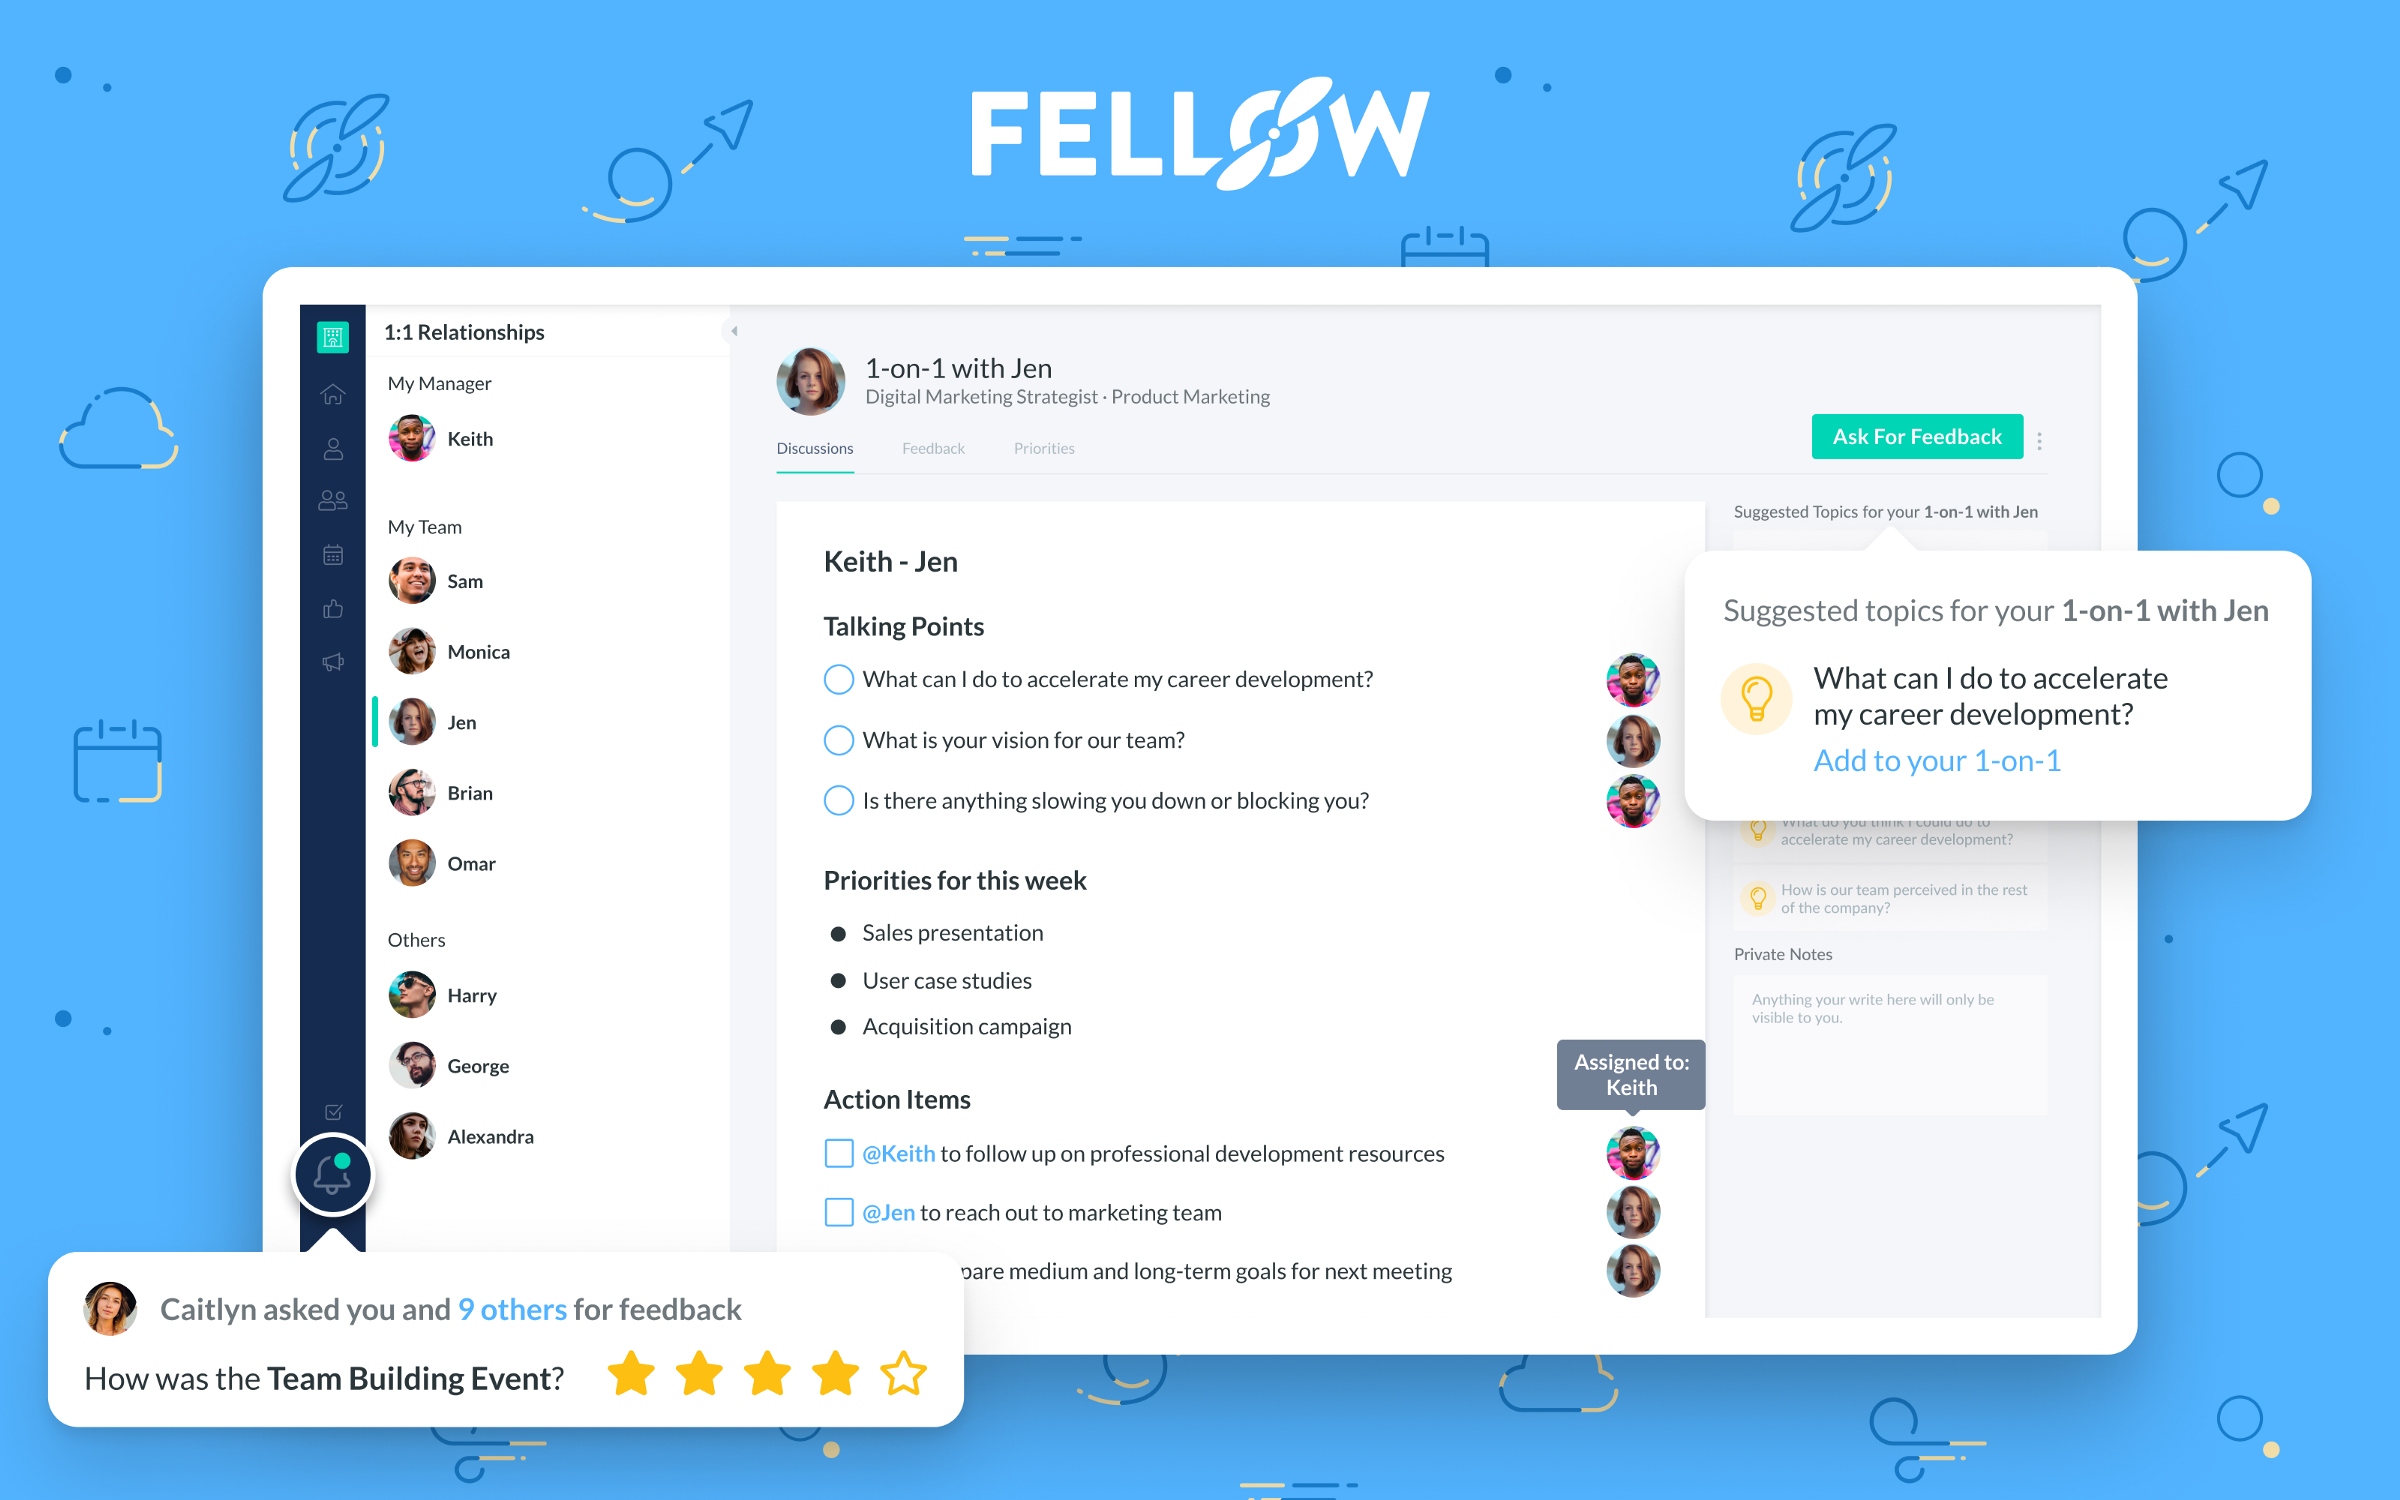 Managers: Fellow is the best 1-on-1 meeting app – Fellow app